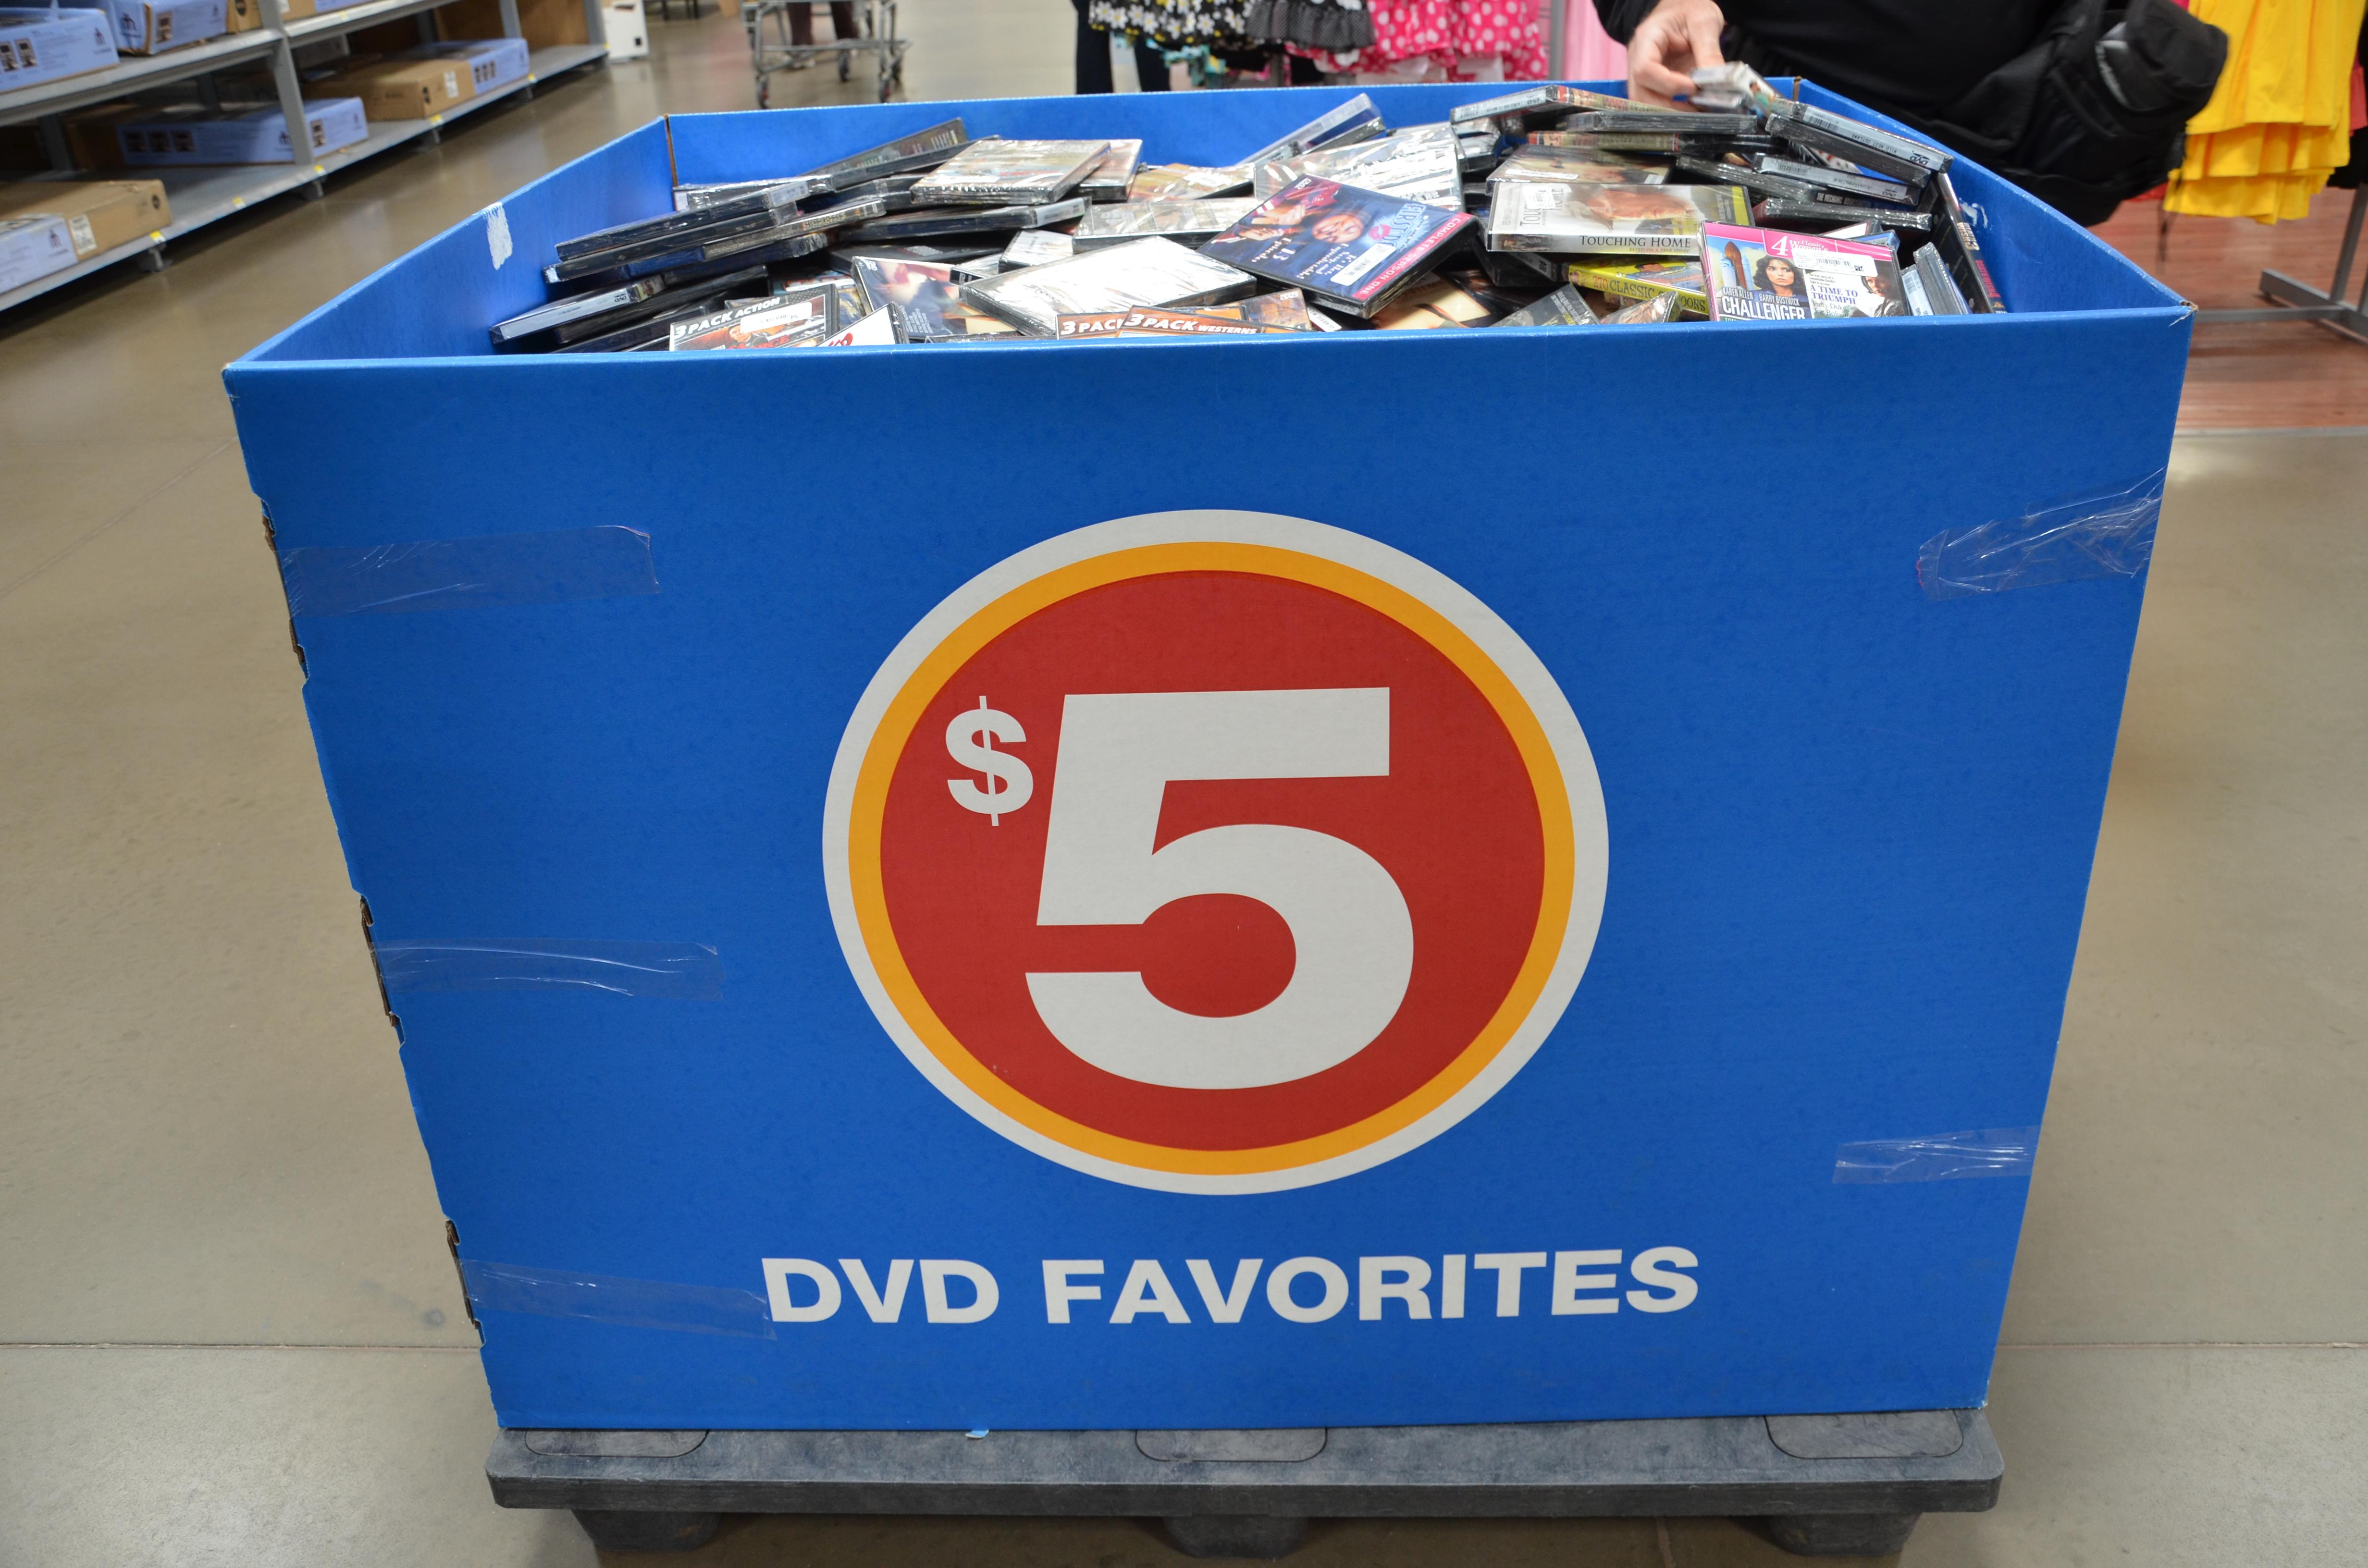 A bin full of TGG DVDs at the Wal-Mart in Somerdale, NJ.